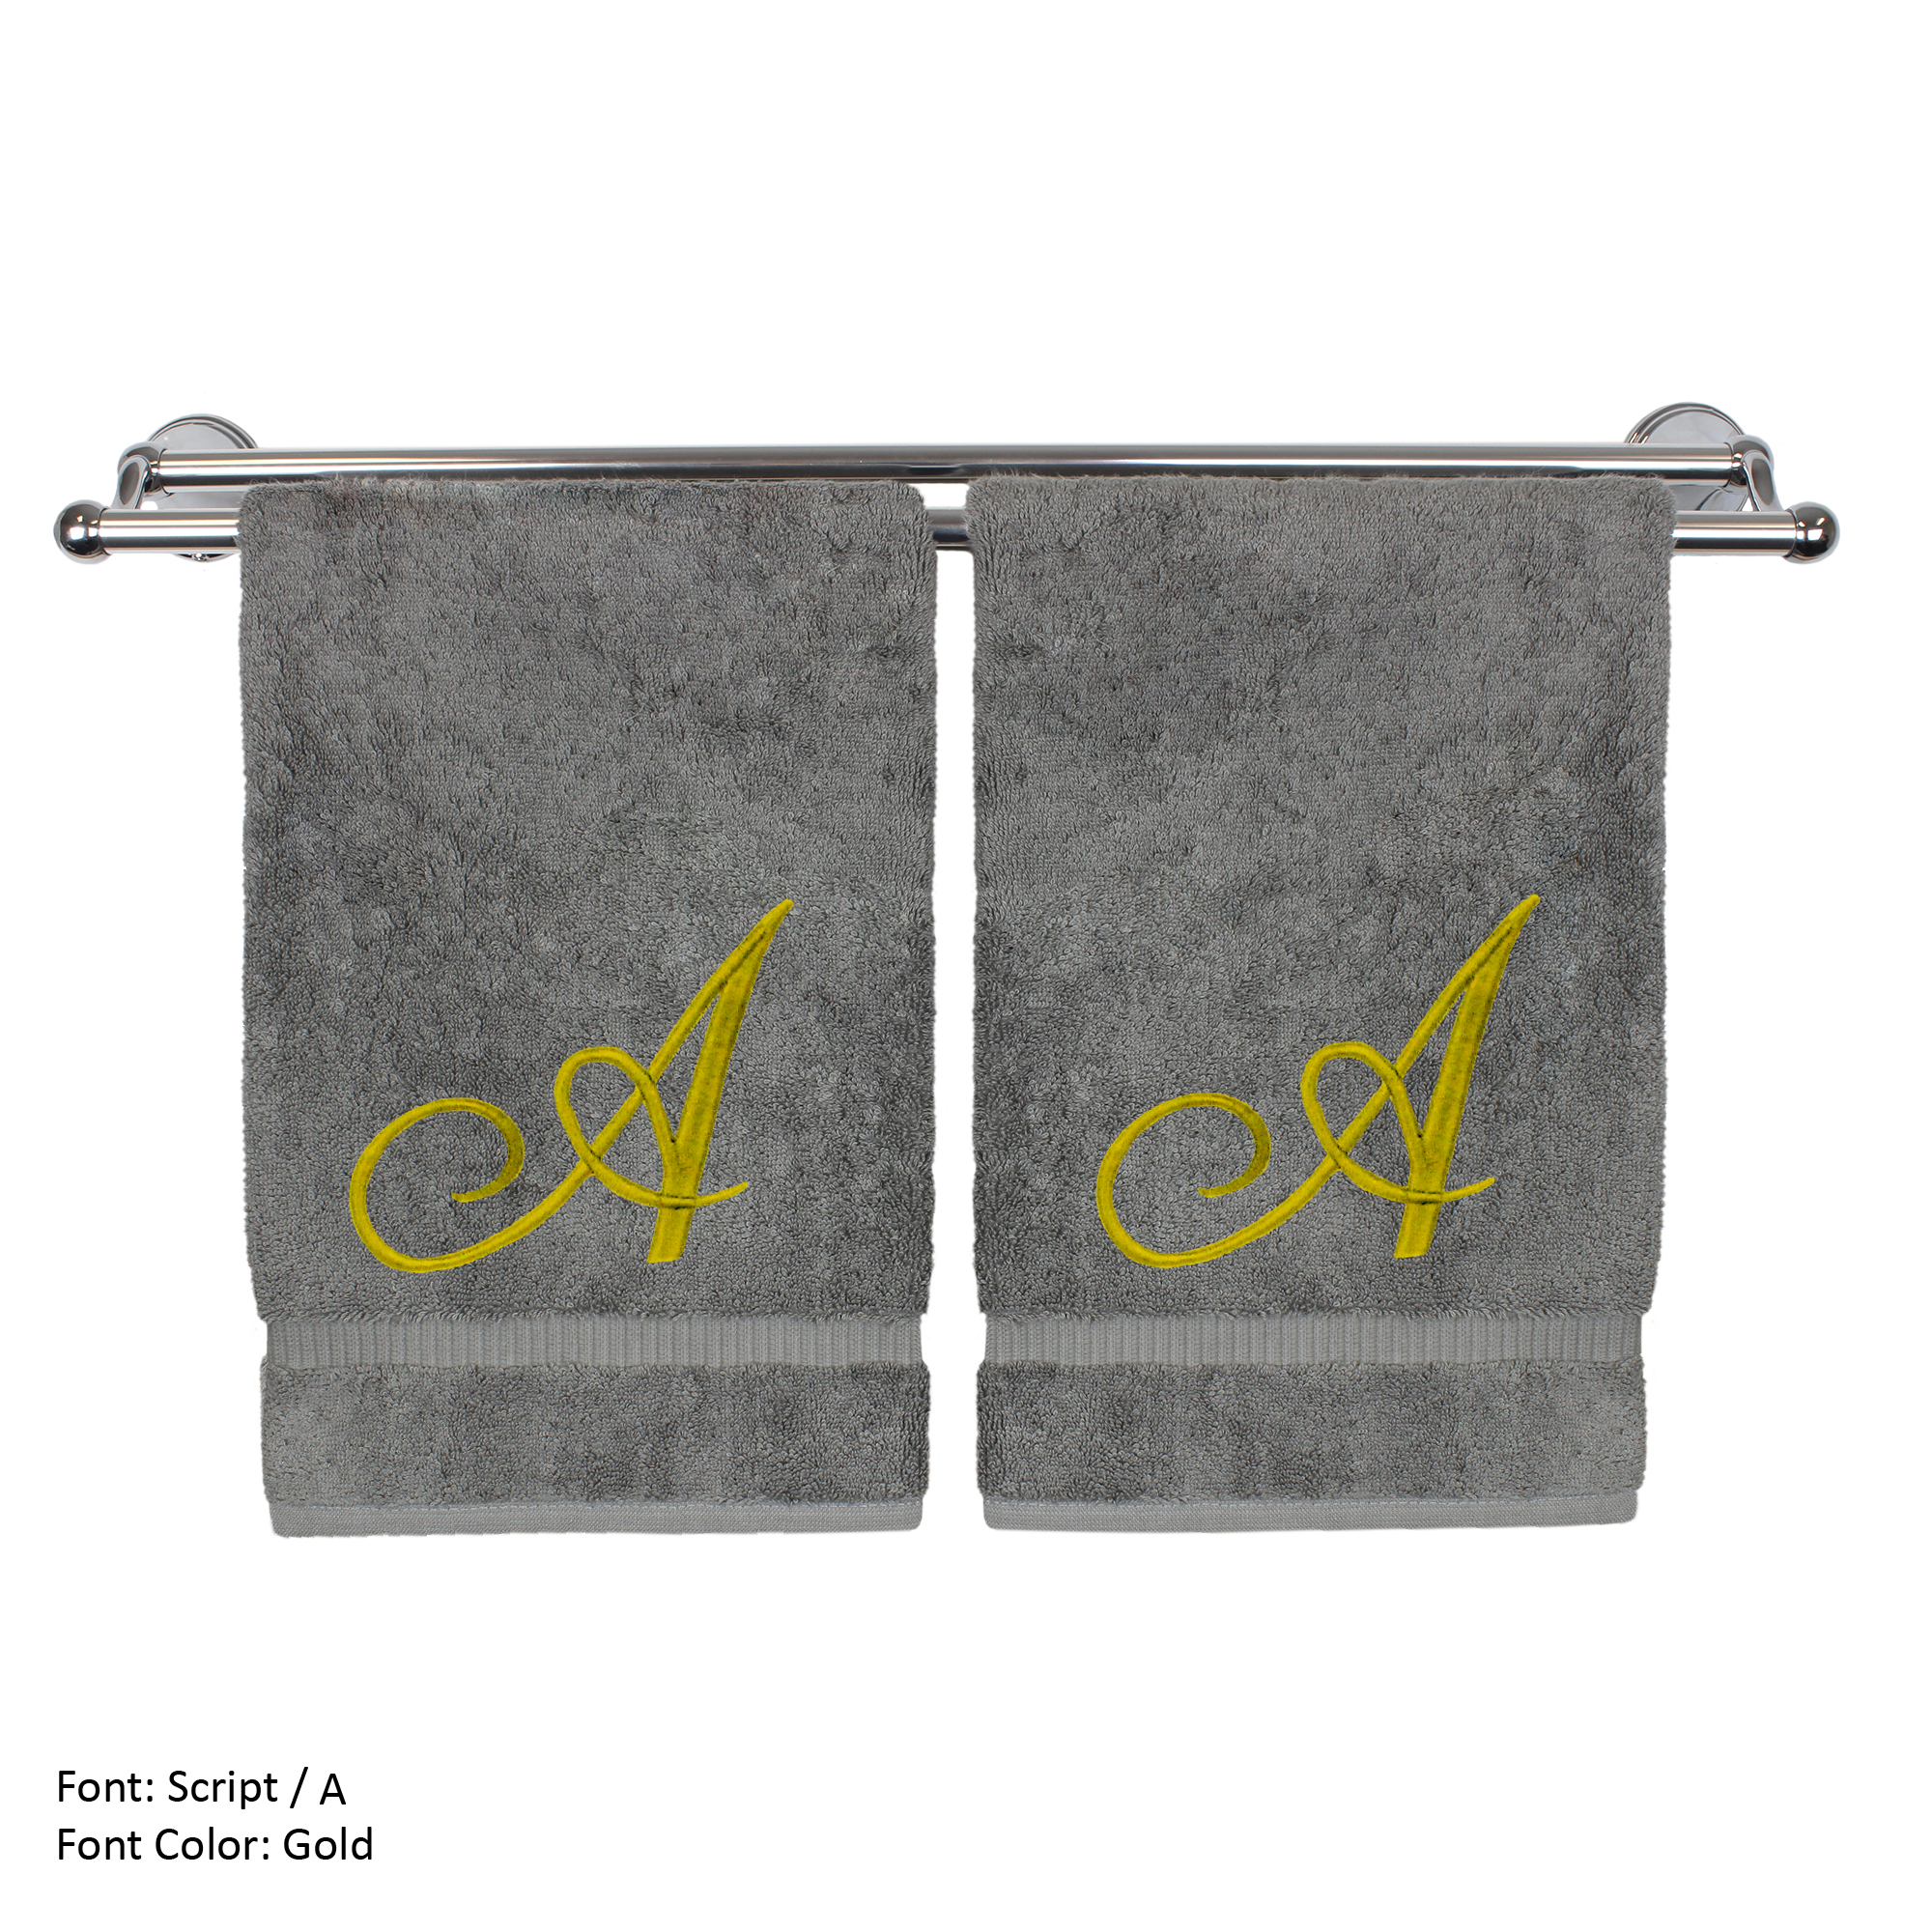 Monogrammed Hand Towel, Personalized Gift, 16 x 30 Inches - Set of 2 - Gold Embroidered Towel - Extra Absorbent 100% Turkish Cotton - Soft Terry Finish - For Bathroom, Kitchen and Spa - Script A Gray